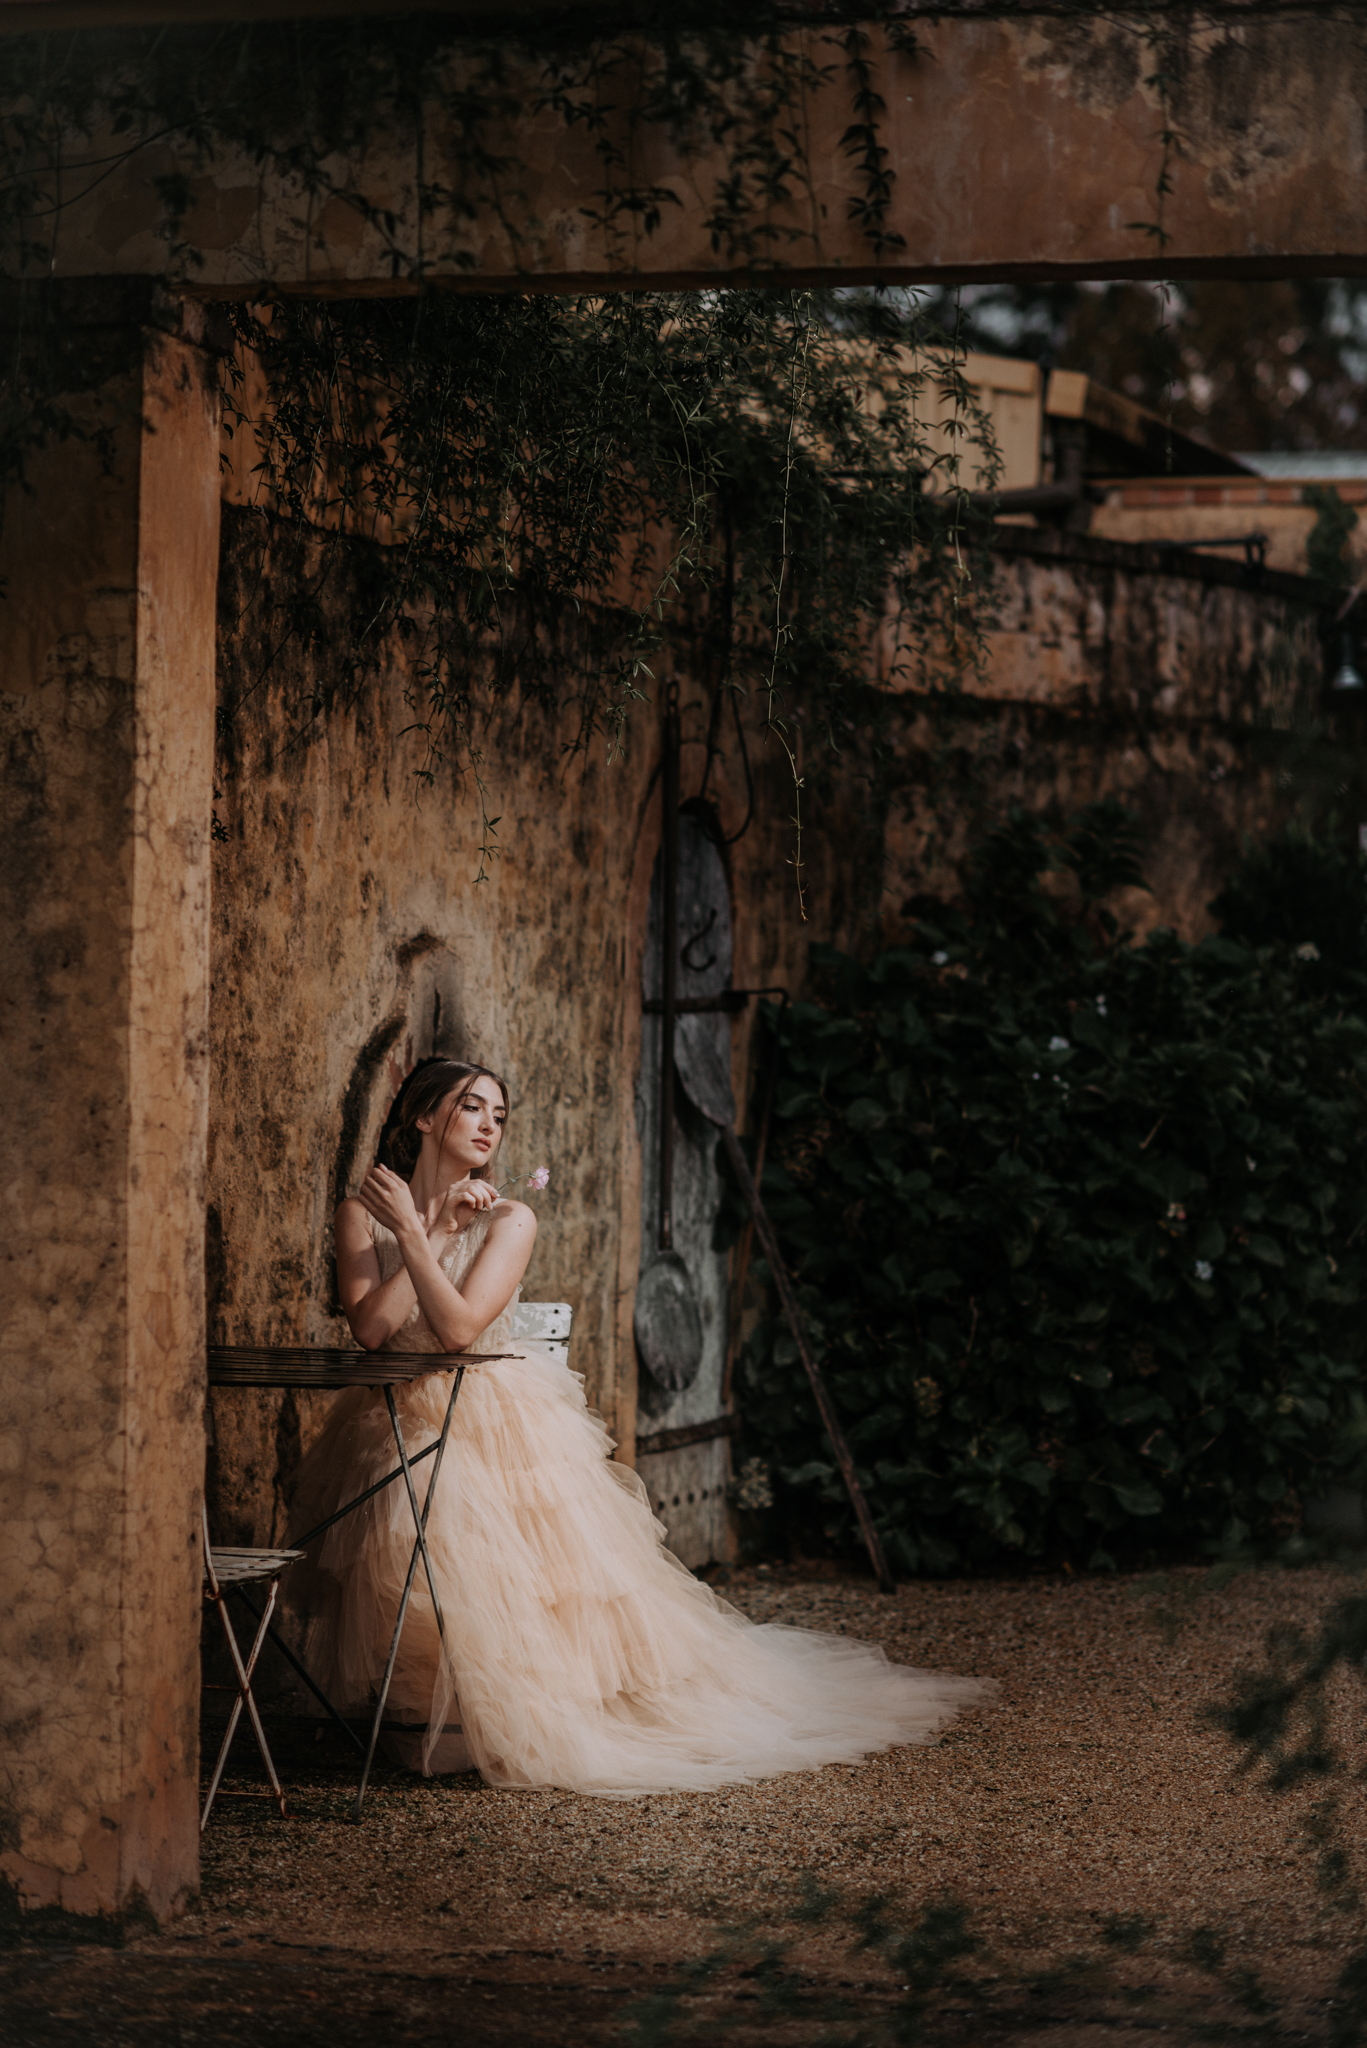 Lovelenscapes Photography X Ulyana Aster Bridal • Les Deux Belettes • Leigh McCoy • Bloodwood Botanica • Alena Iano • Alisa Rudnev • Demi Groot • Jessie Lockley • Maddison Ruby • 158.jpg